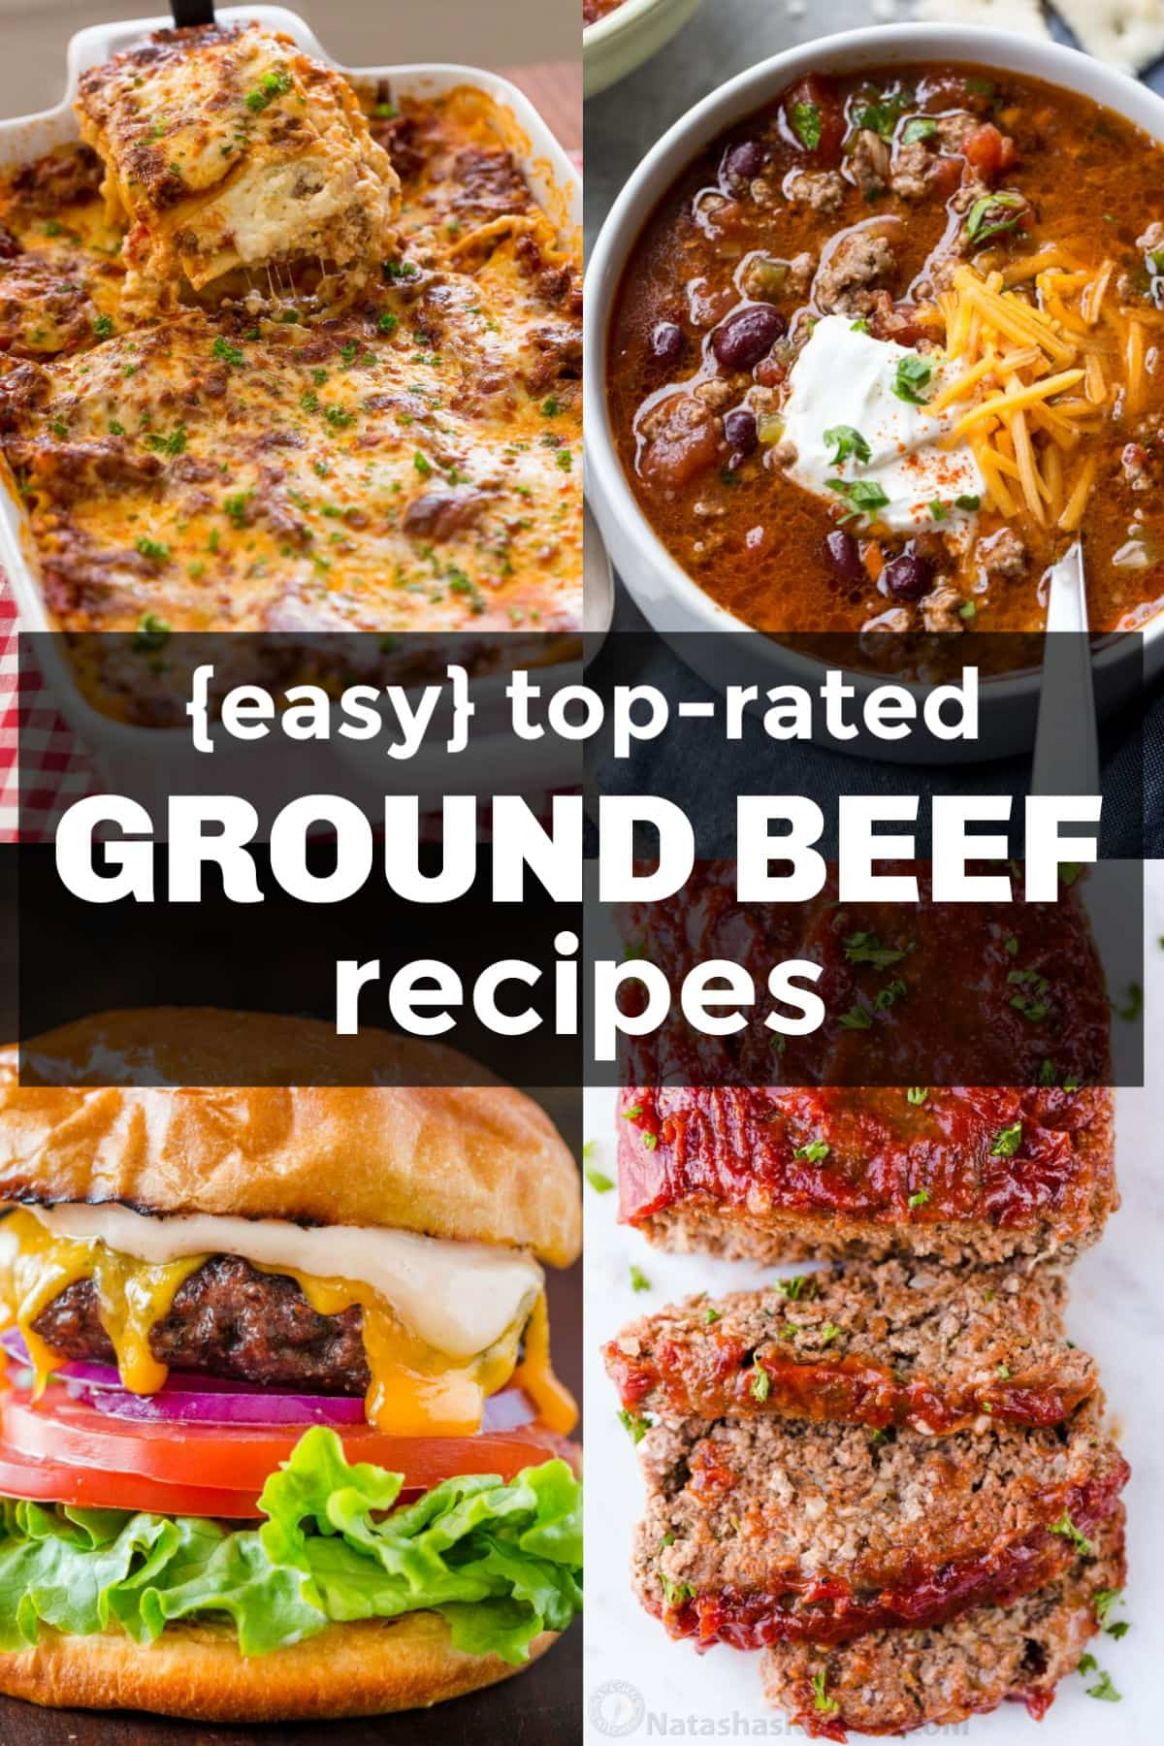 How to Cook Ground Beef for Ground Beef Recipes - Beef Recipes Kid Friendly